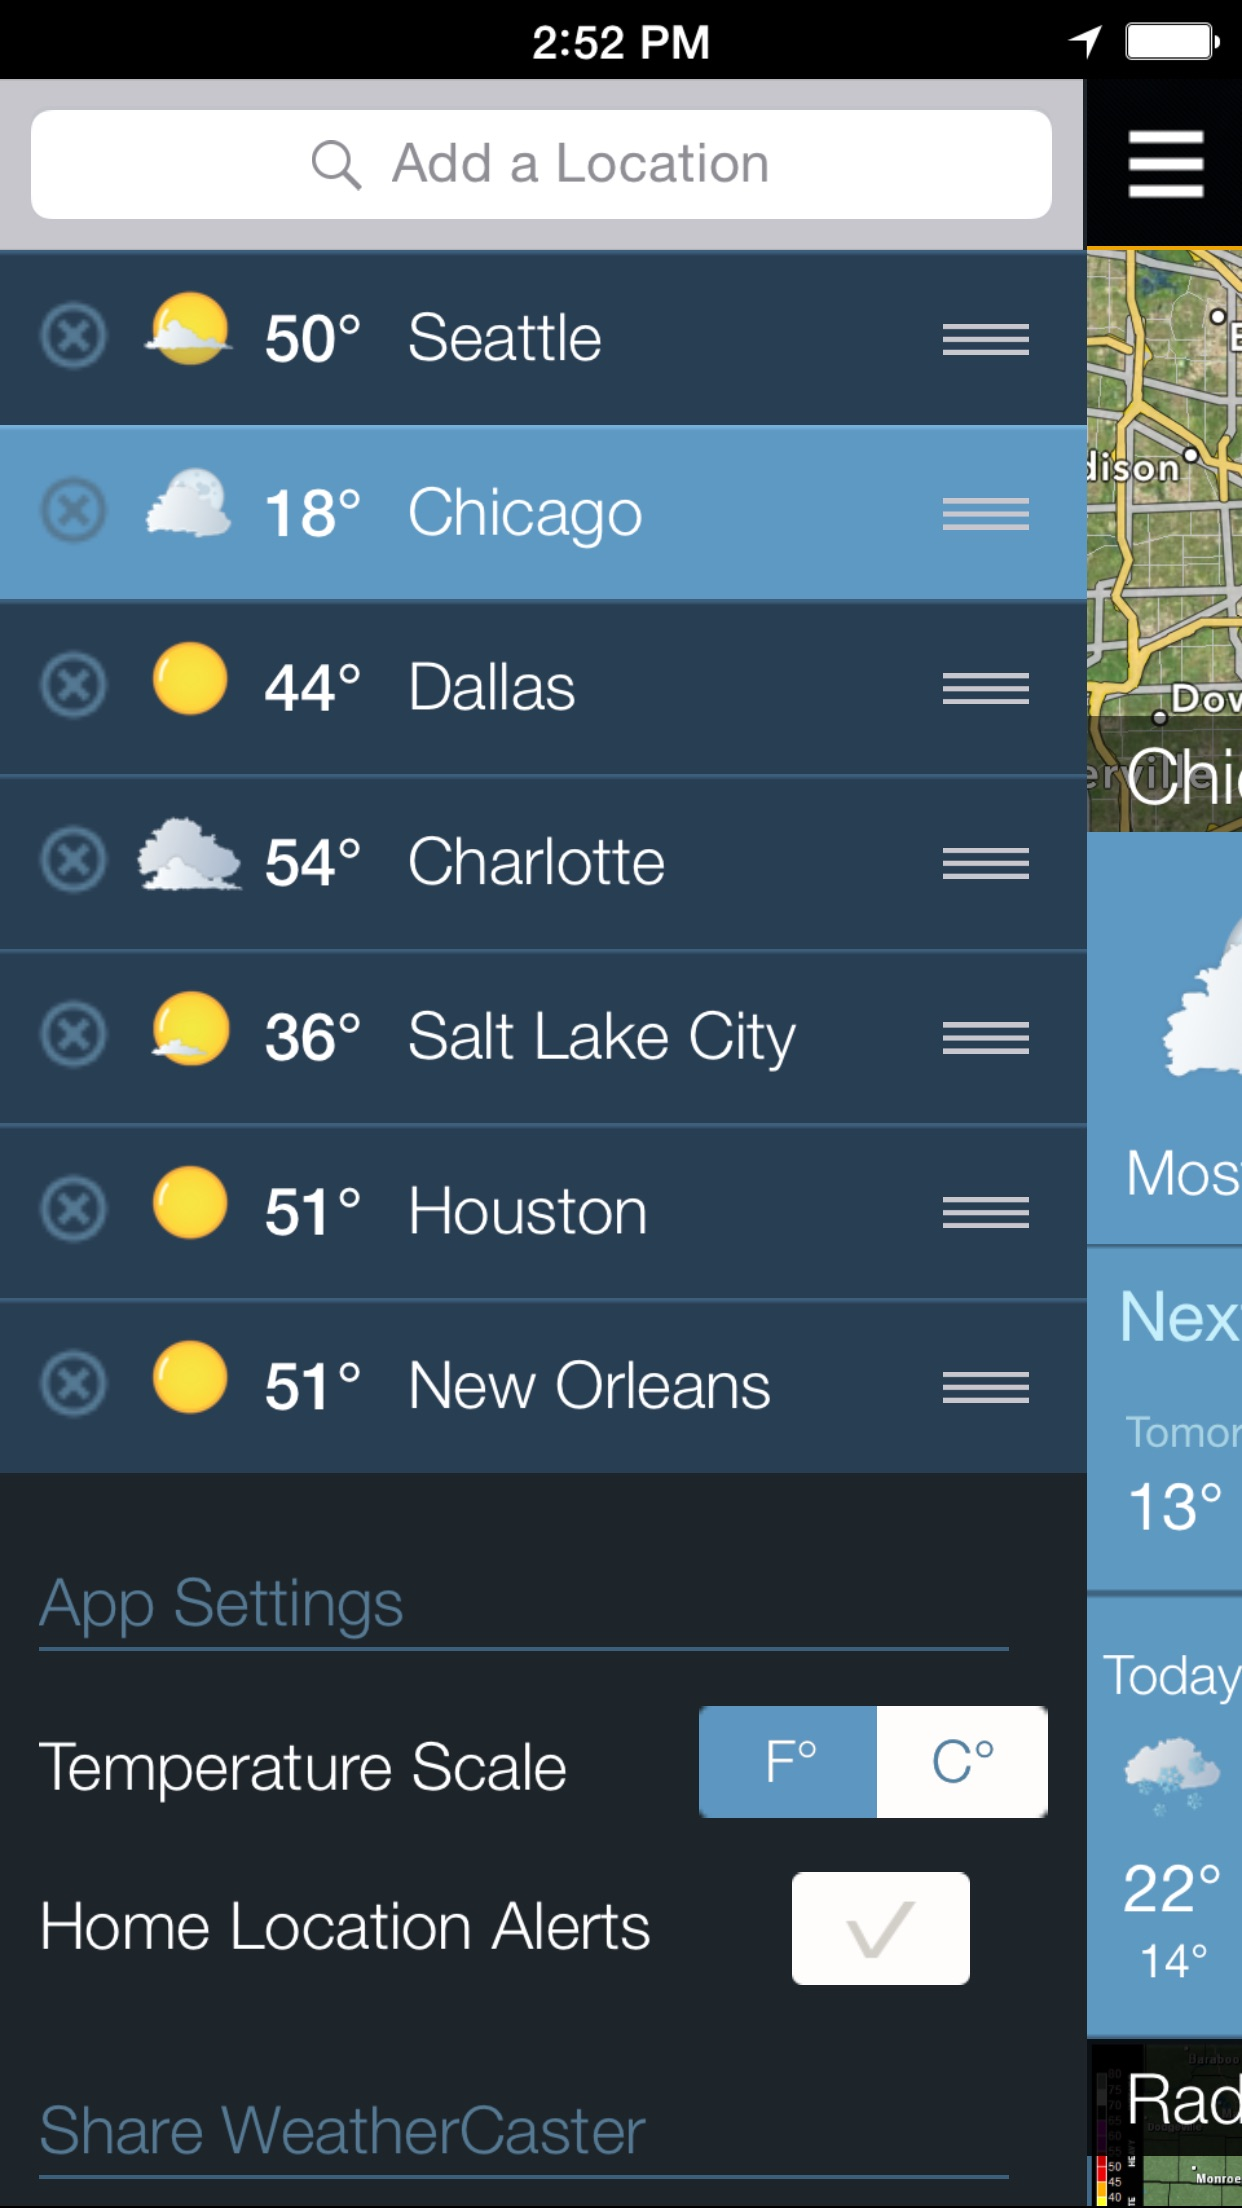 WeatherCaster - Weather radar, forecast, alerts, and hurricane tracker Screenshot